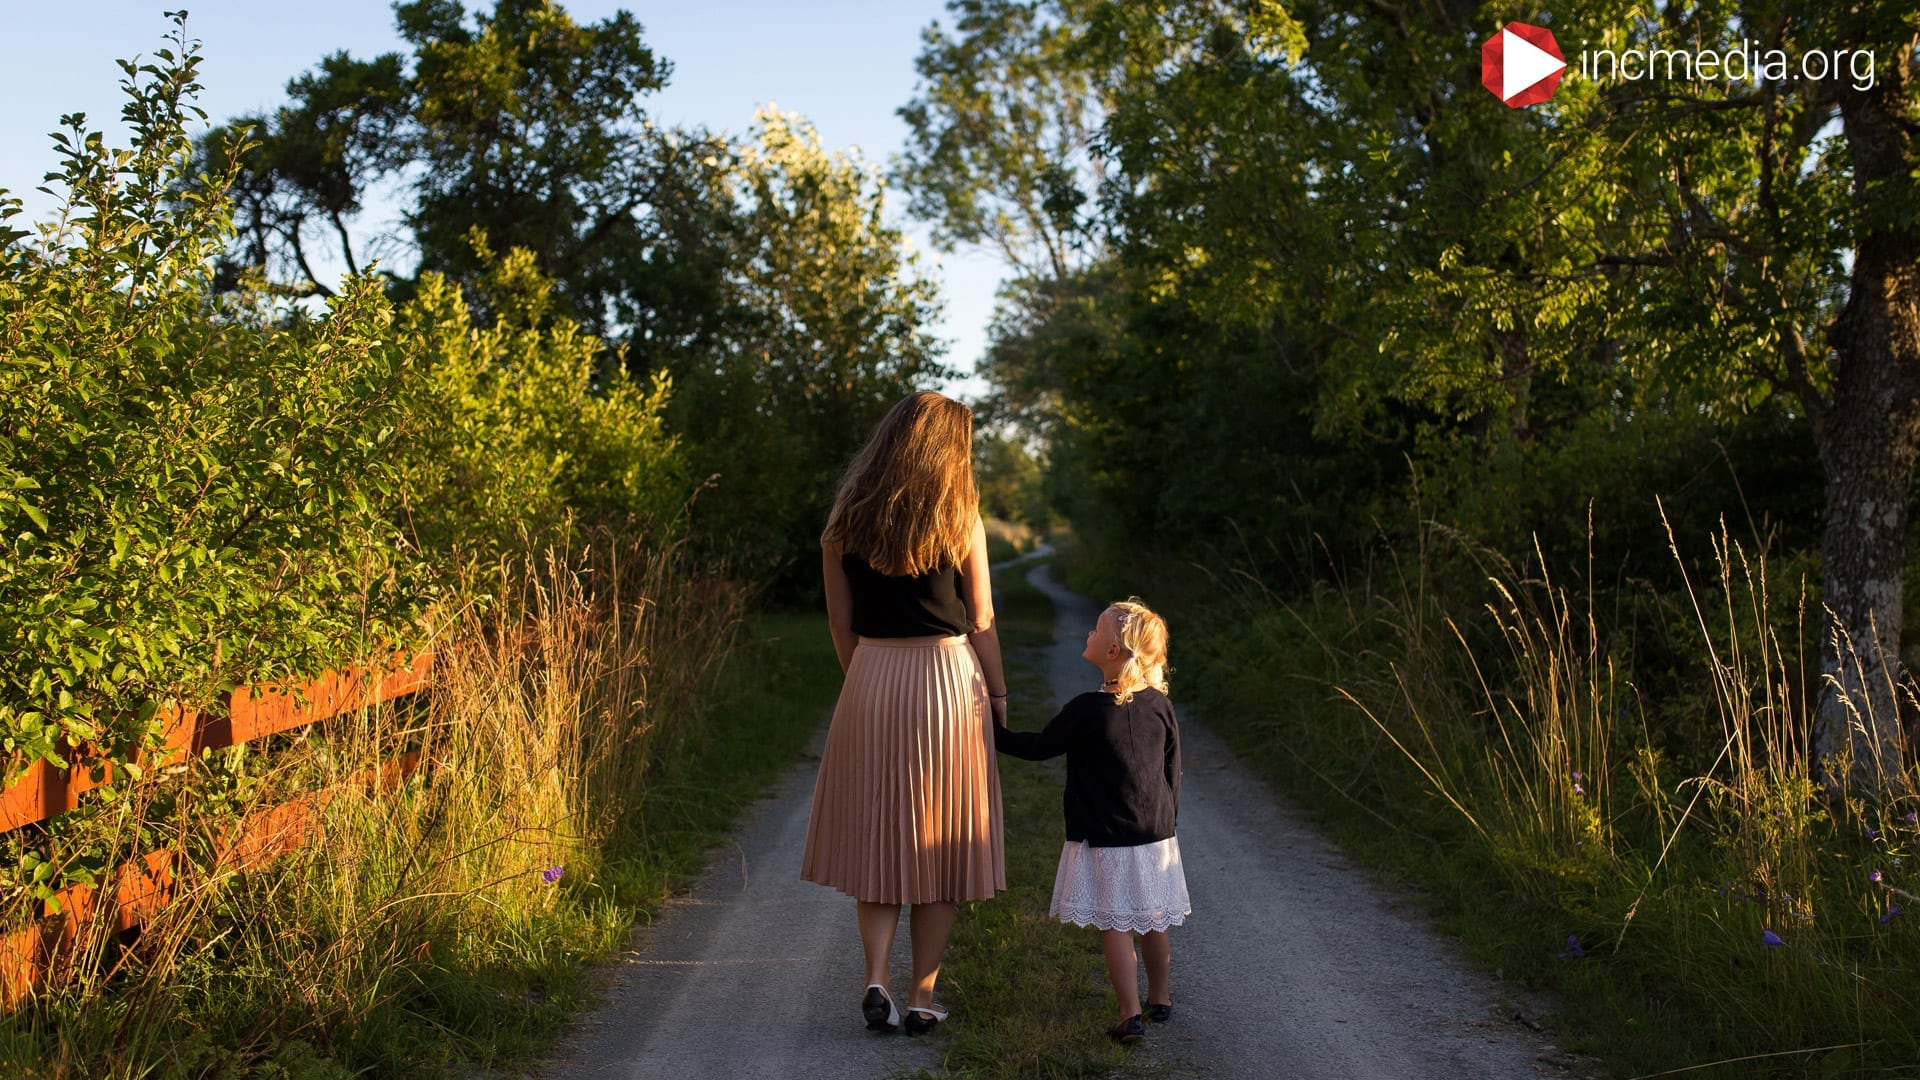 Mom and daughter walking down a path surrounded by trees